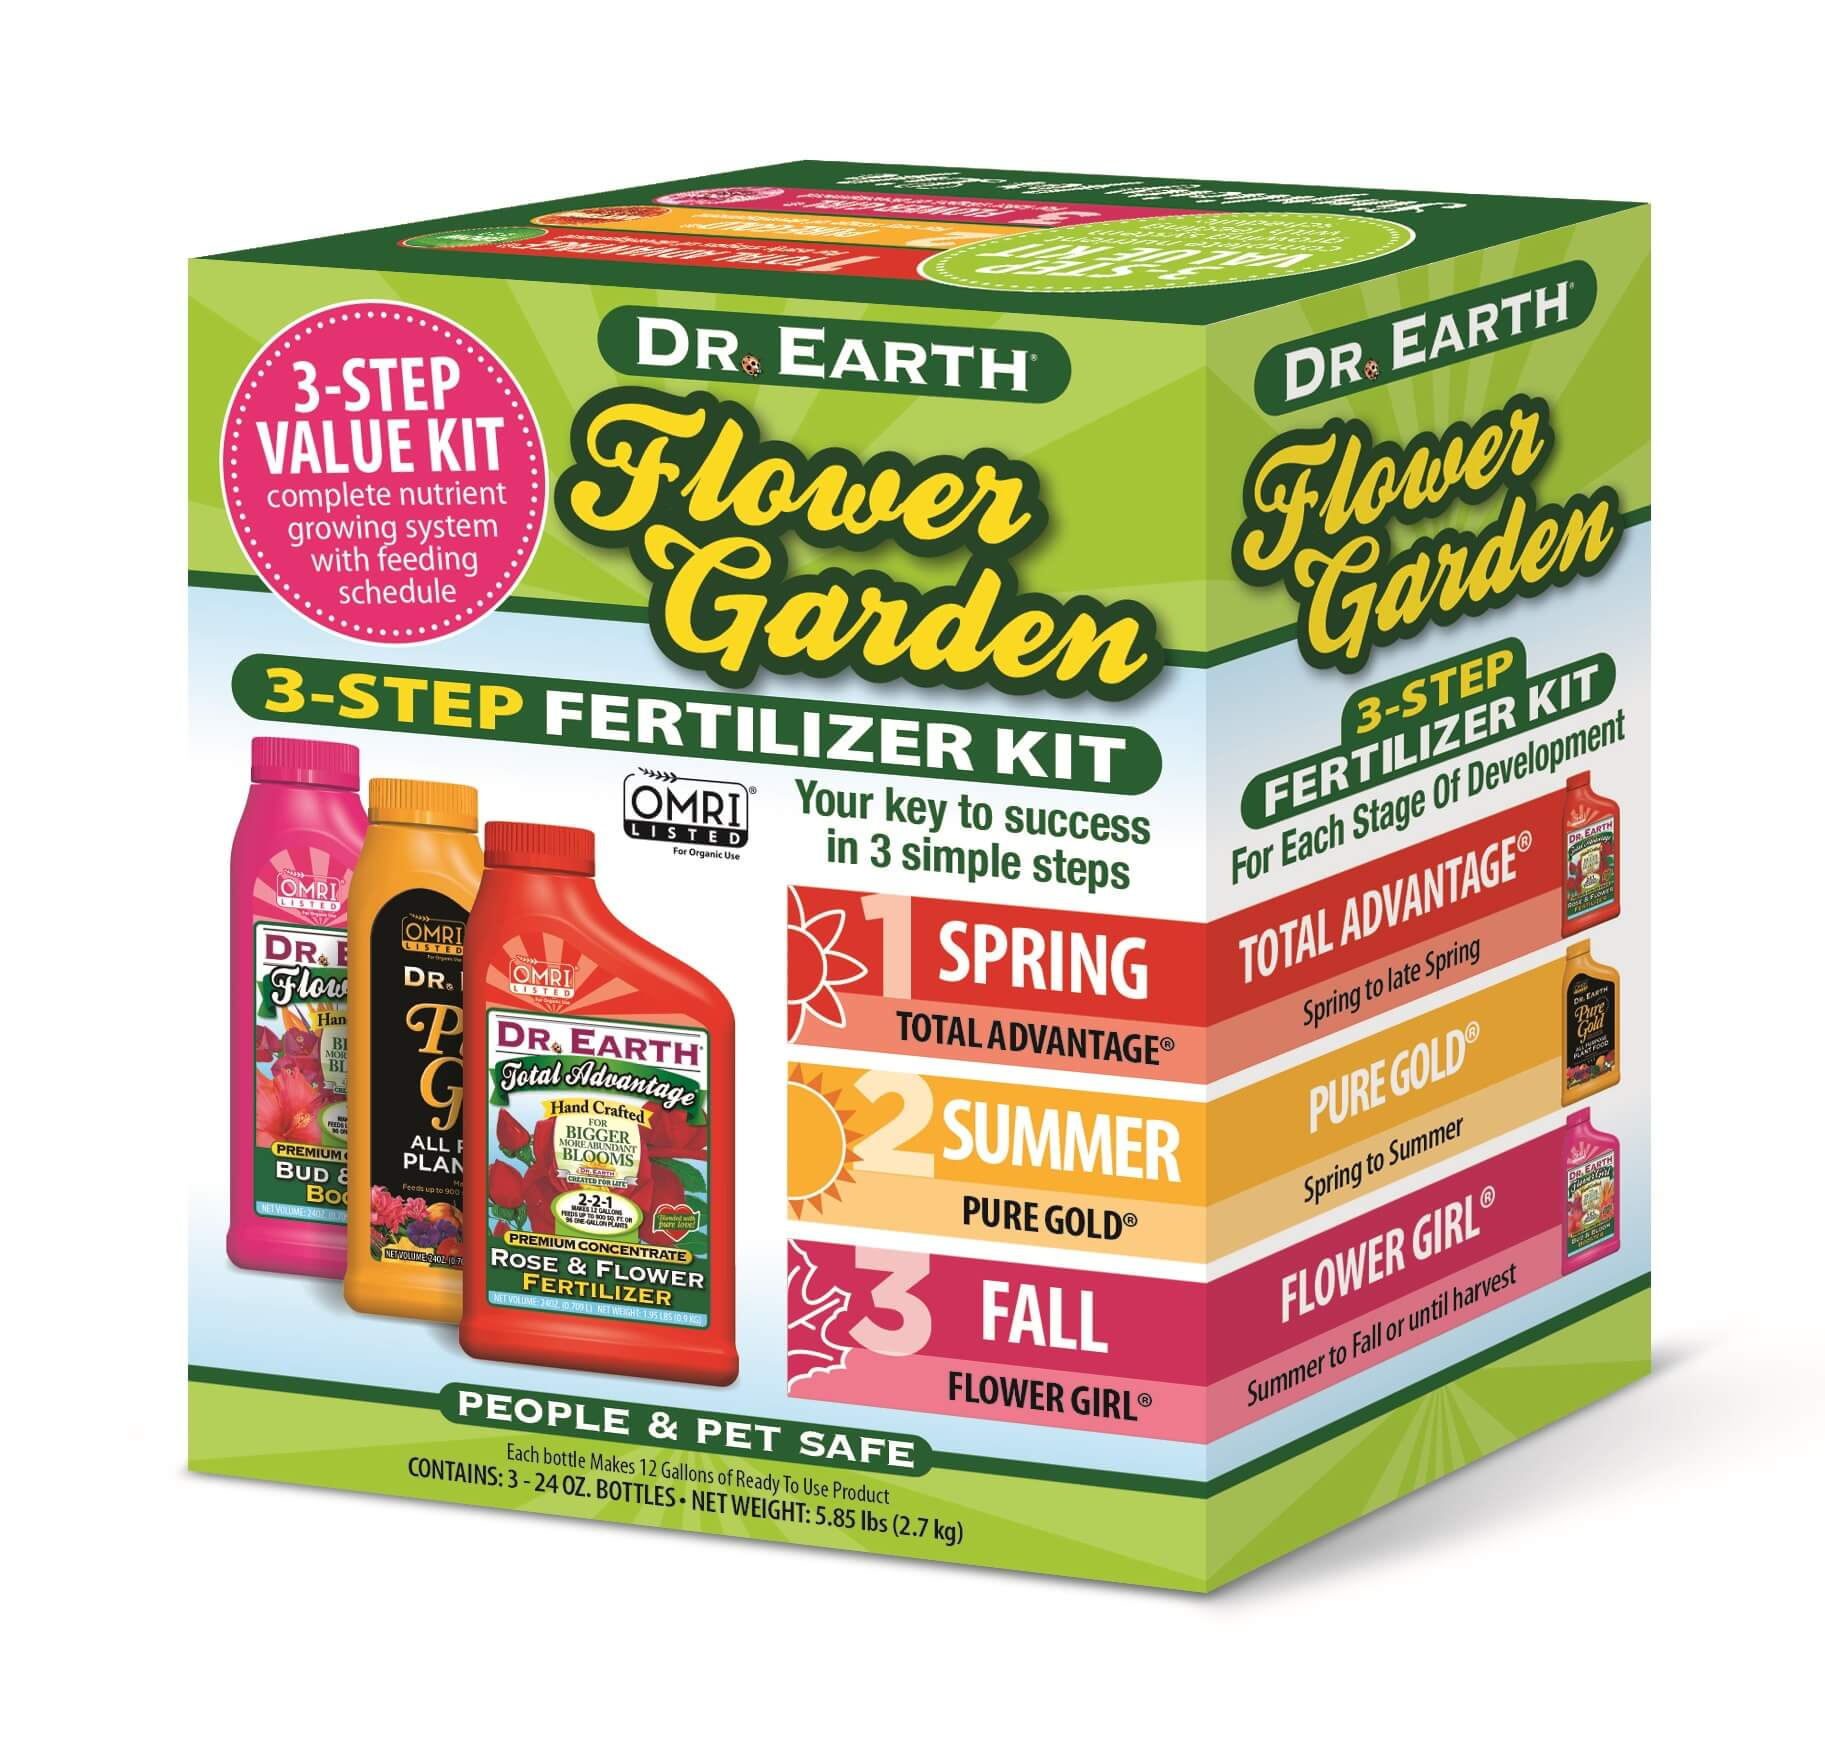 Flower Garden Fertilizer Kit